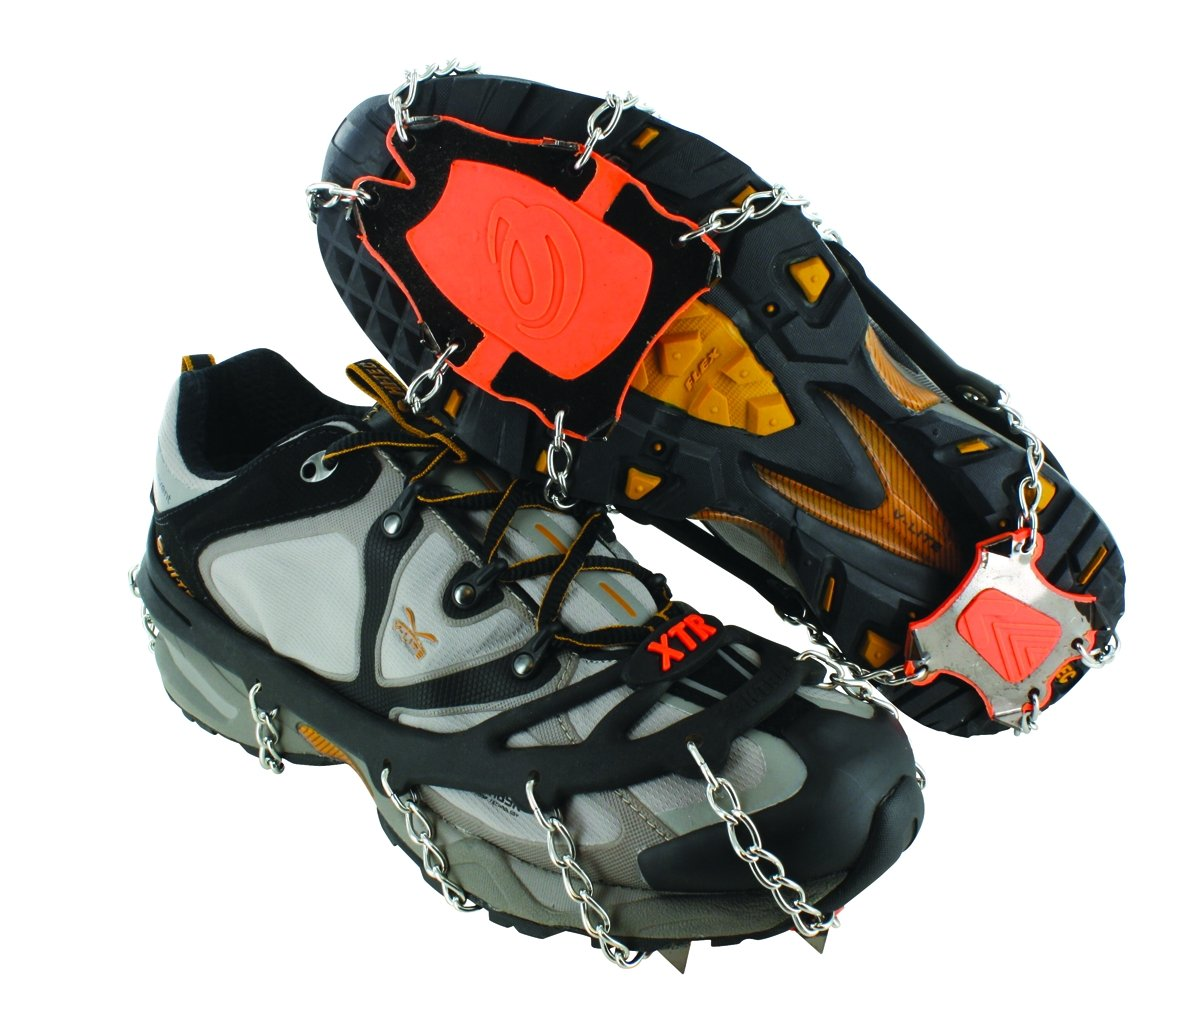 Yaktrax XTR Extreme Outdoor Traction Cleats for Snow and Ice (1 Pair), Black/Orange, Large